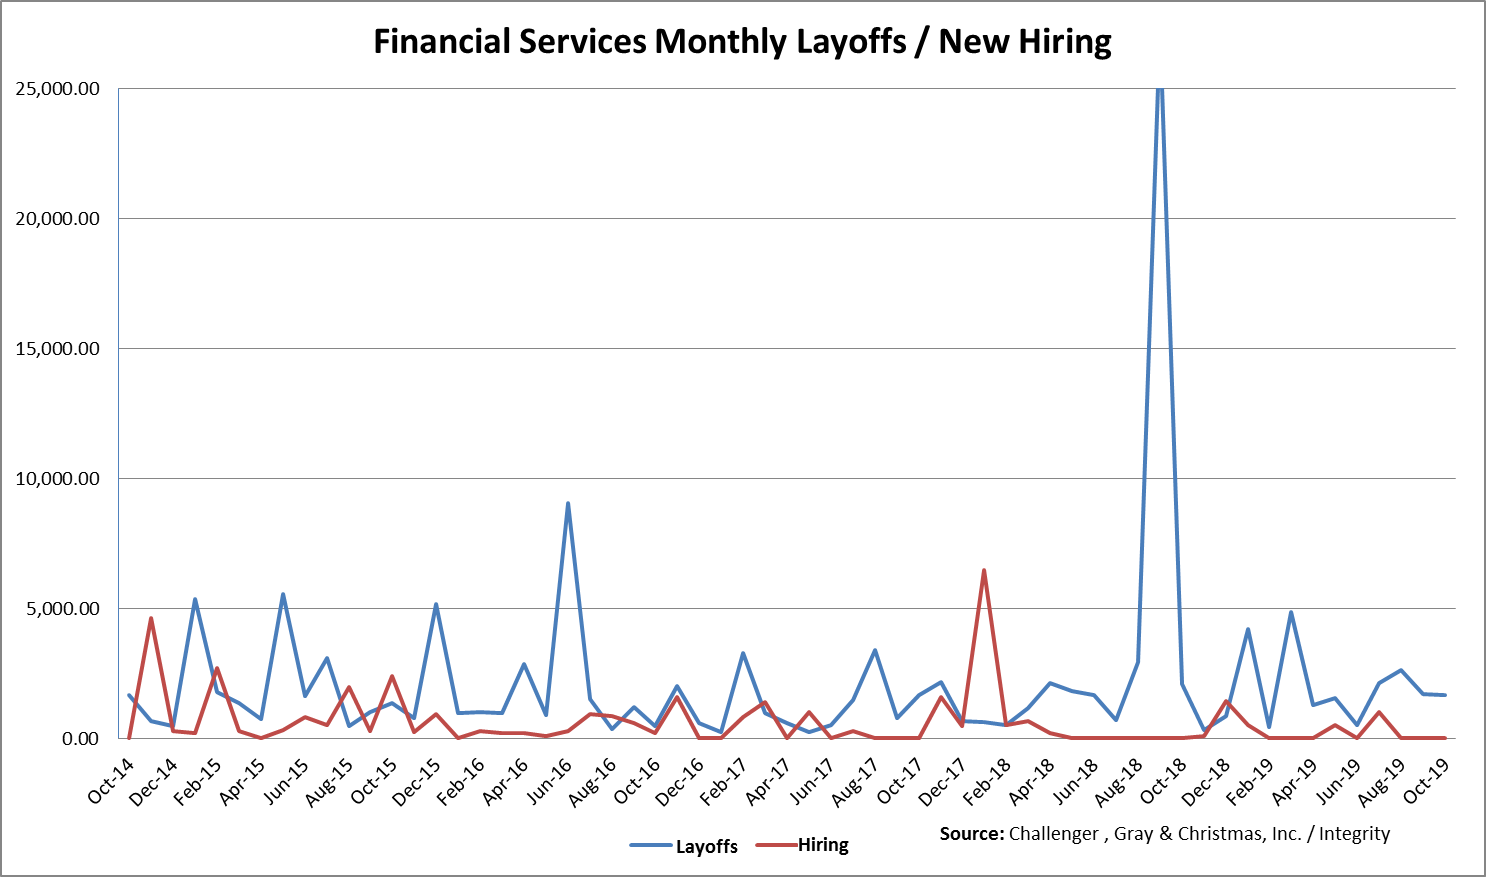 Christmas Hiring 2020 Mixed Wall Street Jobs Outlook in October • Integrity Research